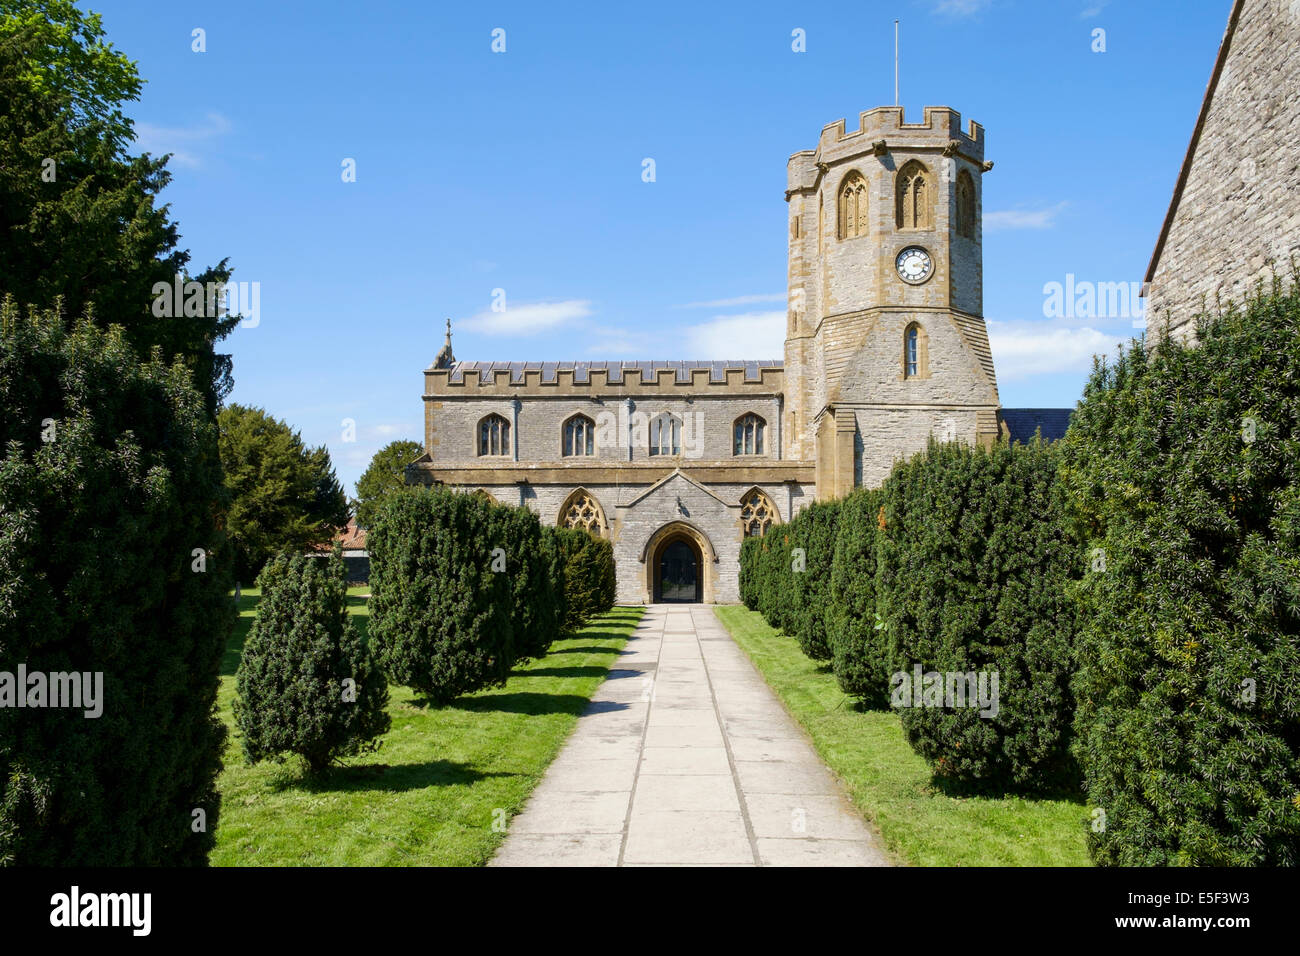 St Michael and All Angels Church in Somerton, Somerset, England, UK - a medieval Grade I listed building - Stock Image